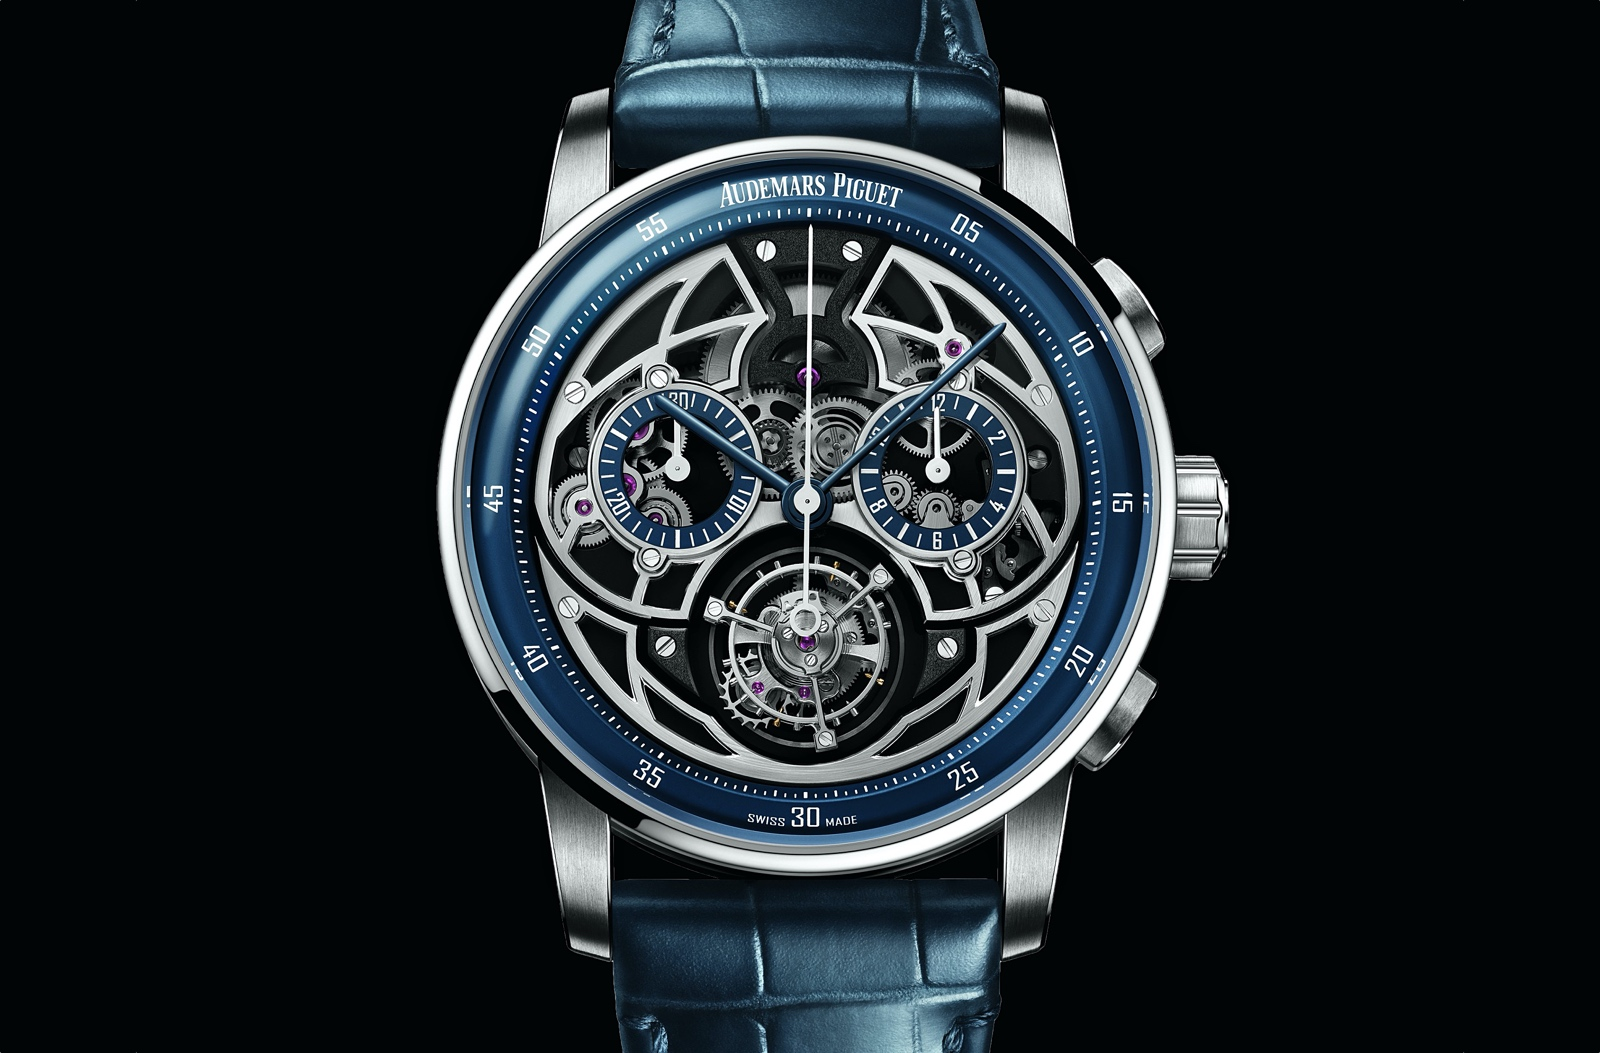 Audemars Piguet Code 11.59 Selfwinding Flying Tourbillon Chronograph - esfera